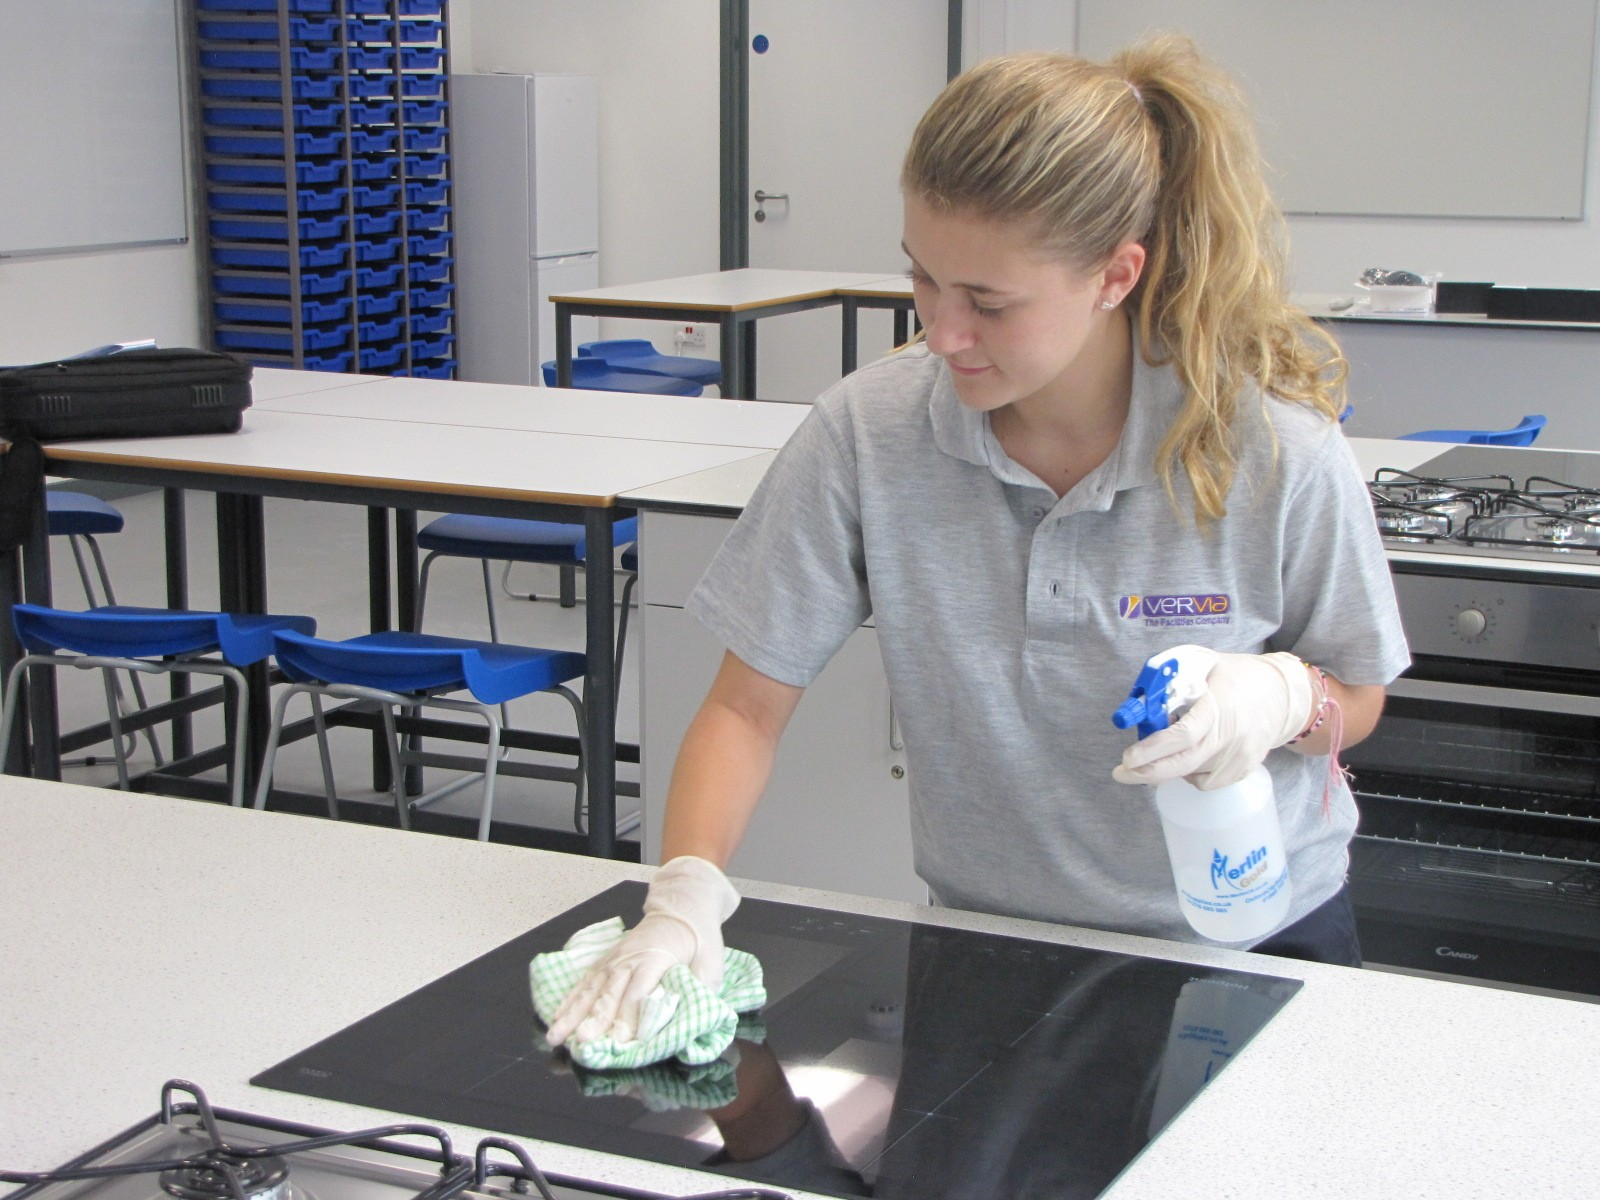 cleaning hob in classroom